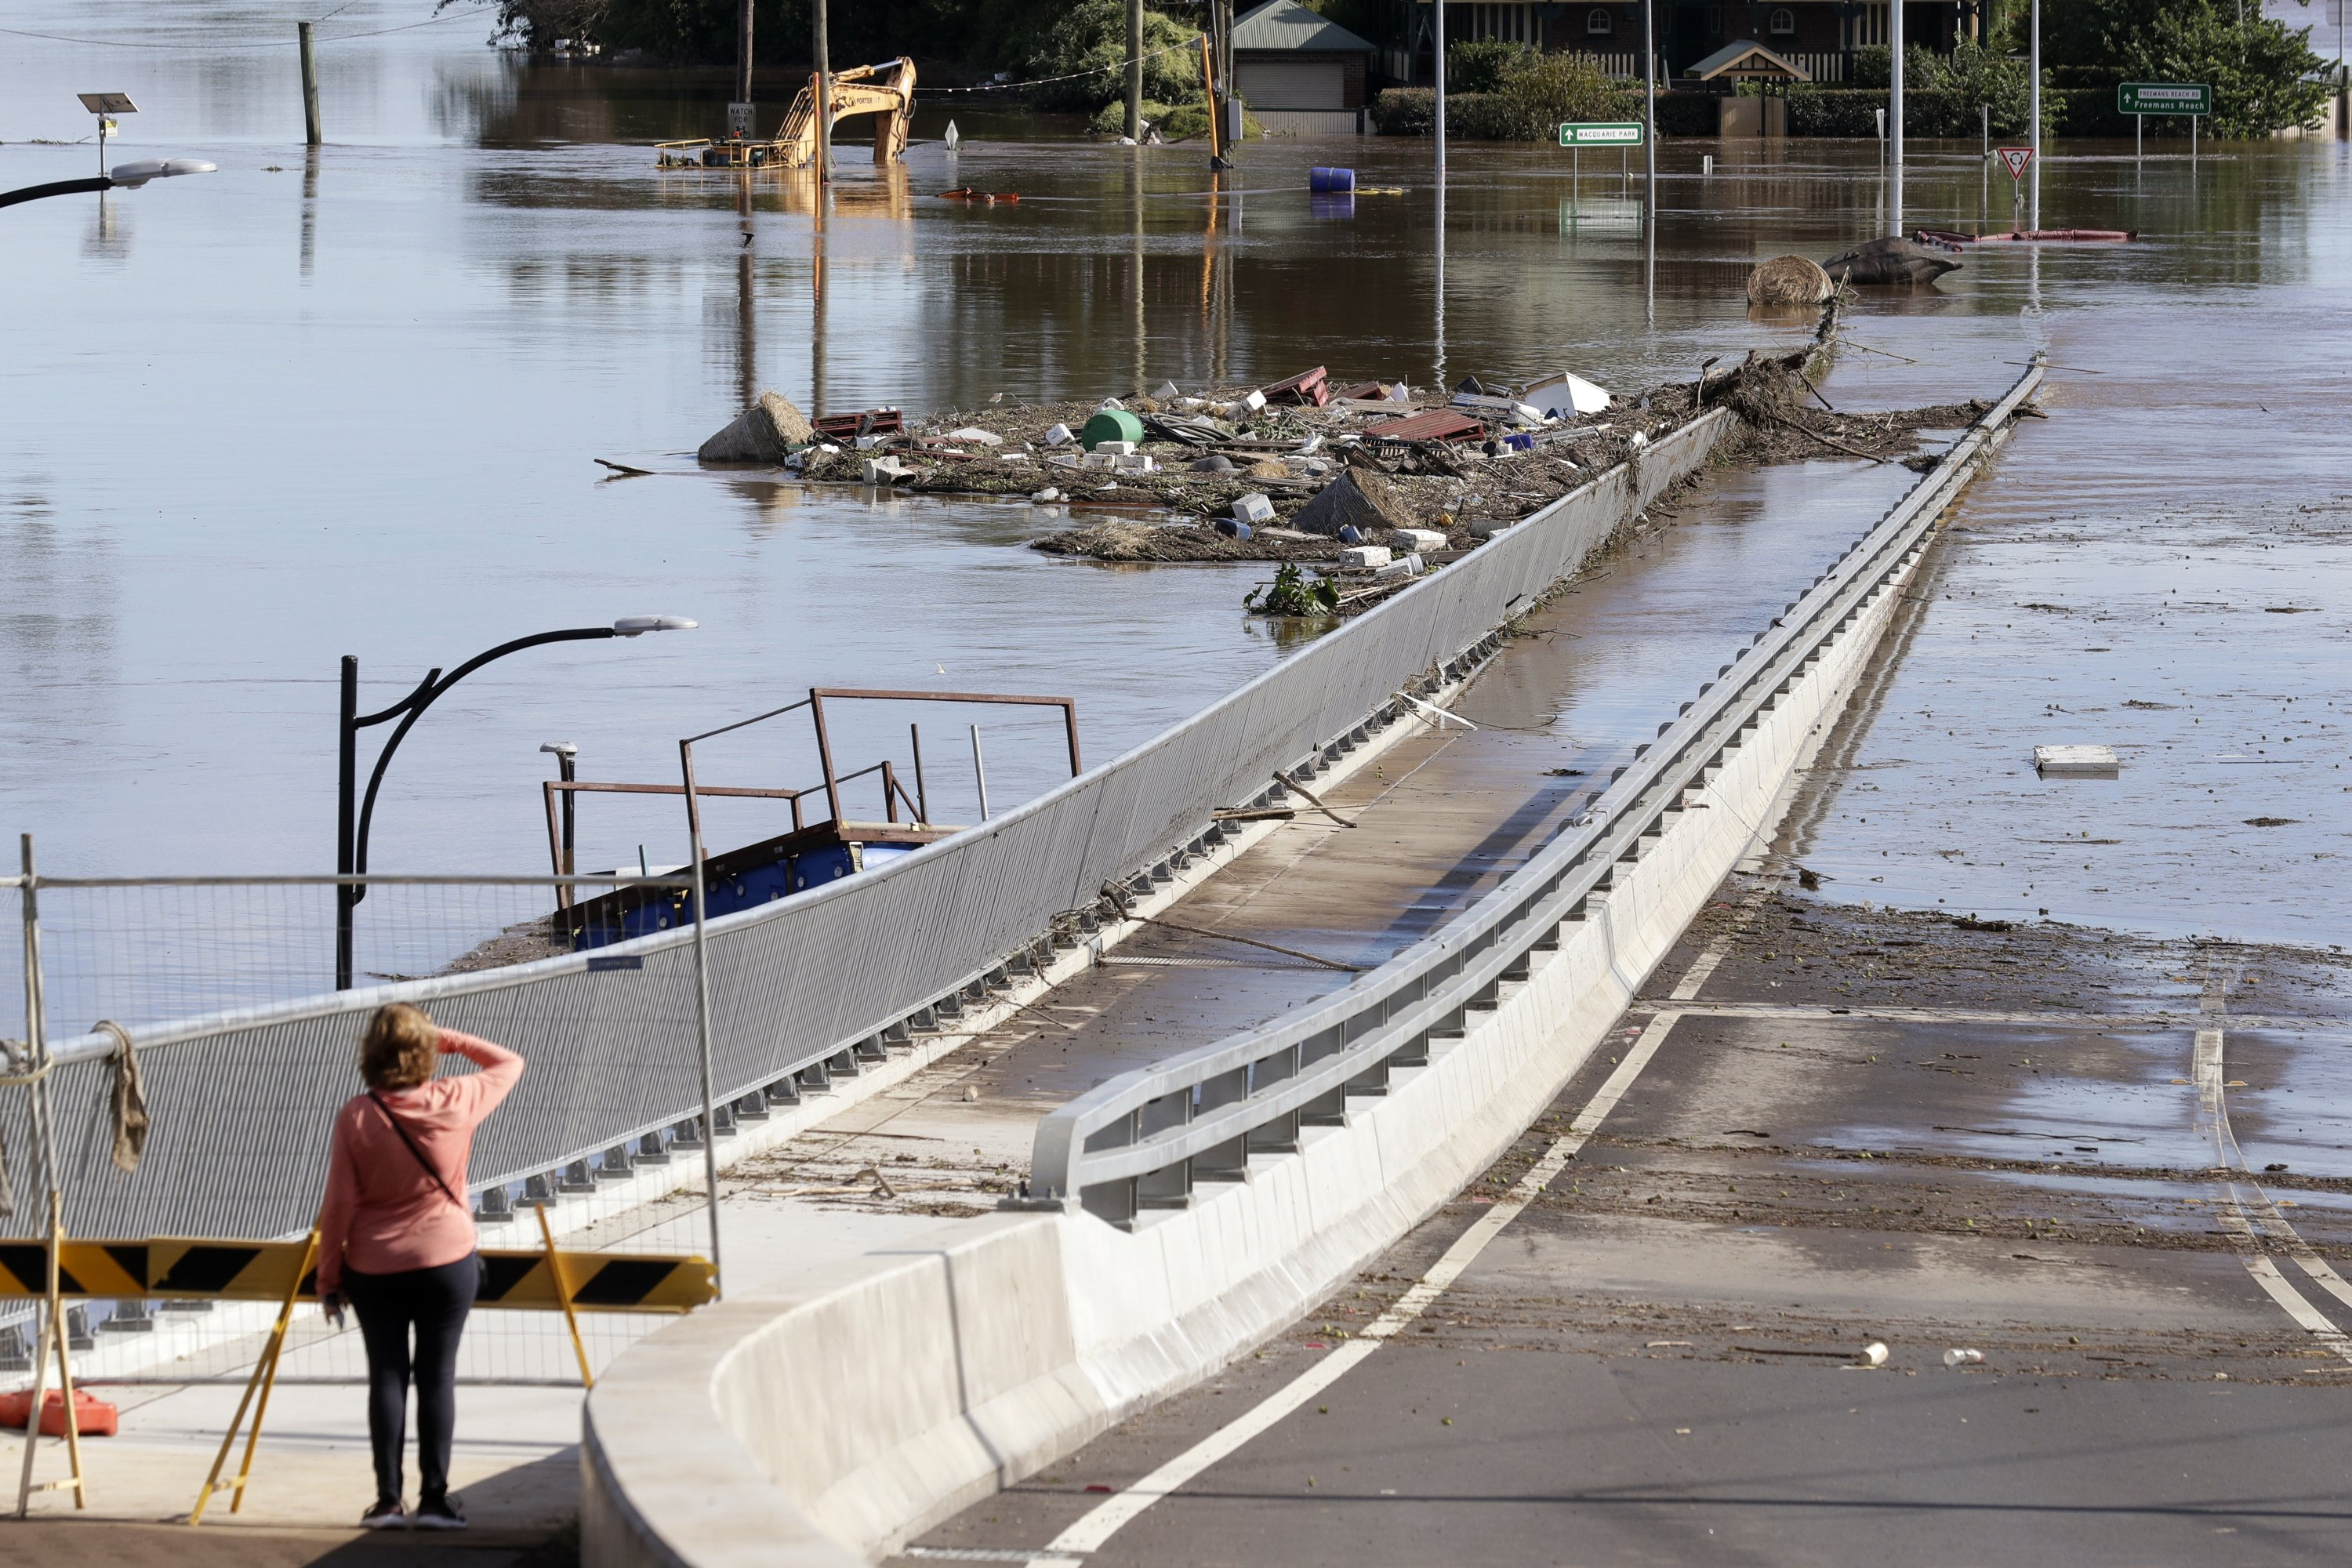 A woman looks at debris caught on a submerged bridge in Windsor, northwest of Sydney, Australia, March 25, 2021. (AP Photo)